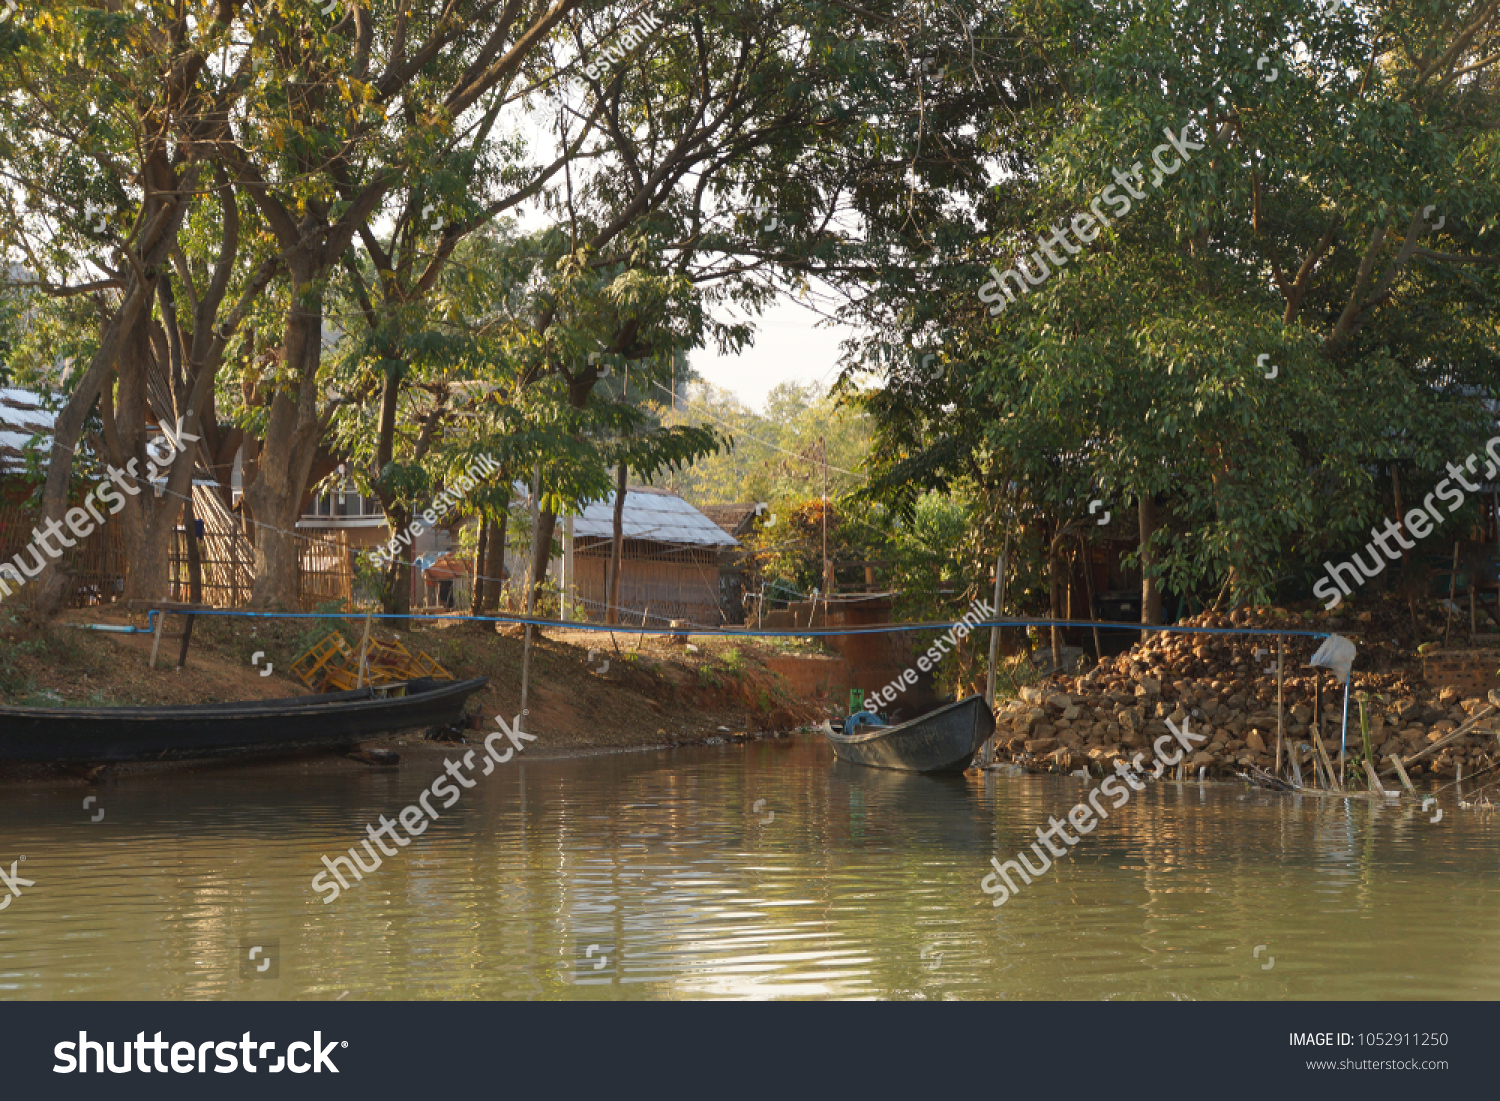 Small Boat Among Floating Gardens Canals Stock Photo (Royalty Free ...